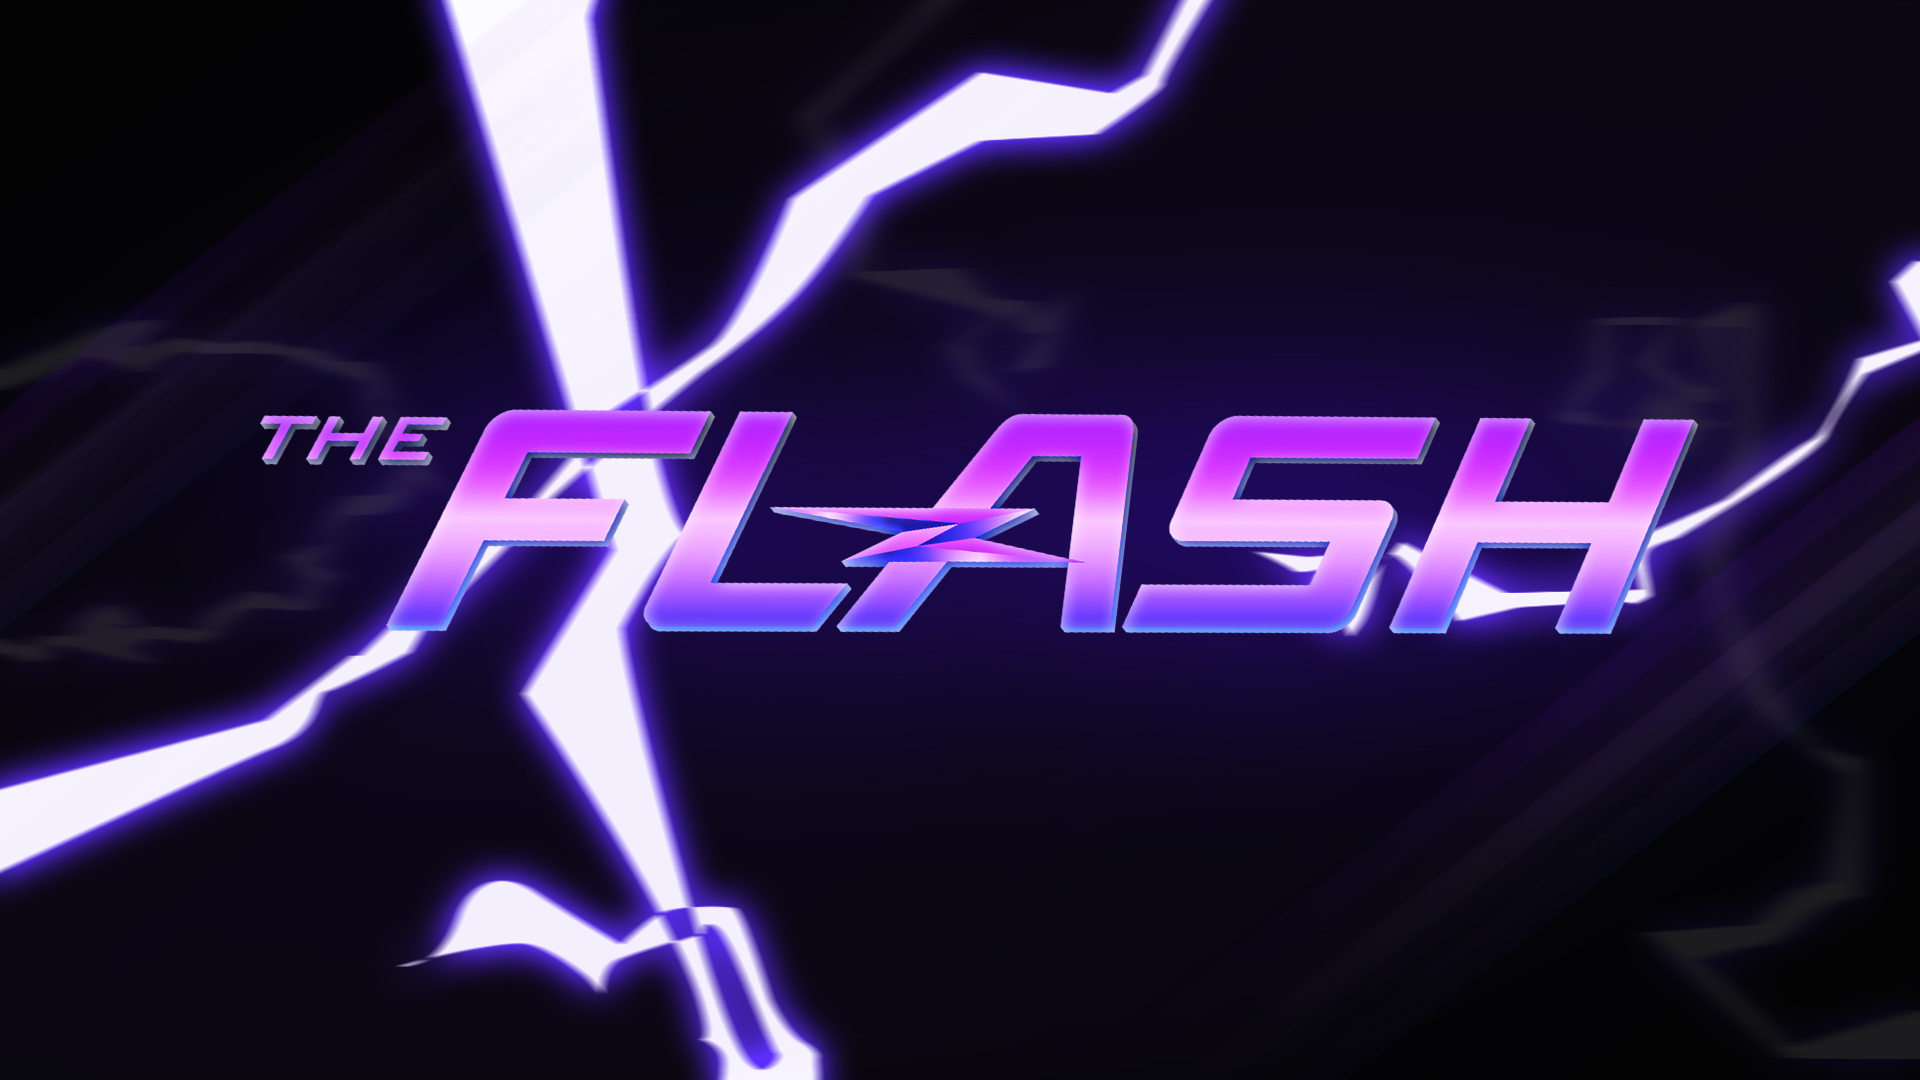 Flash Zoom Wallpaper Wallpaper Collection